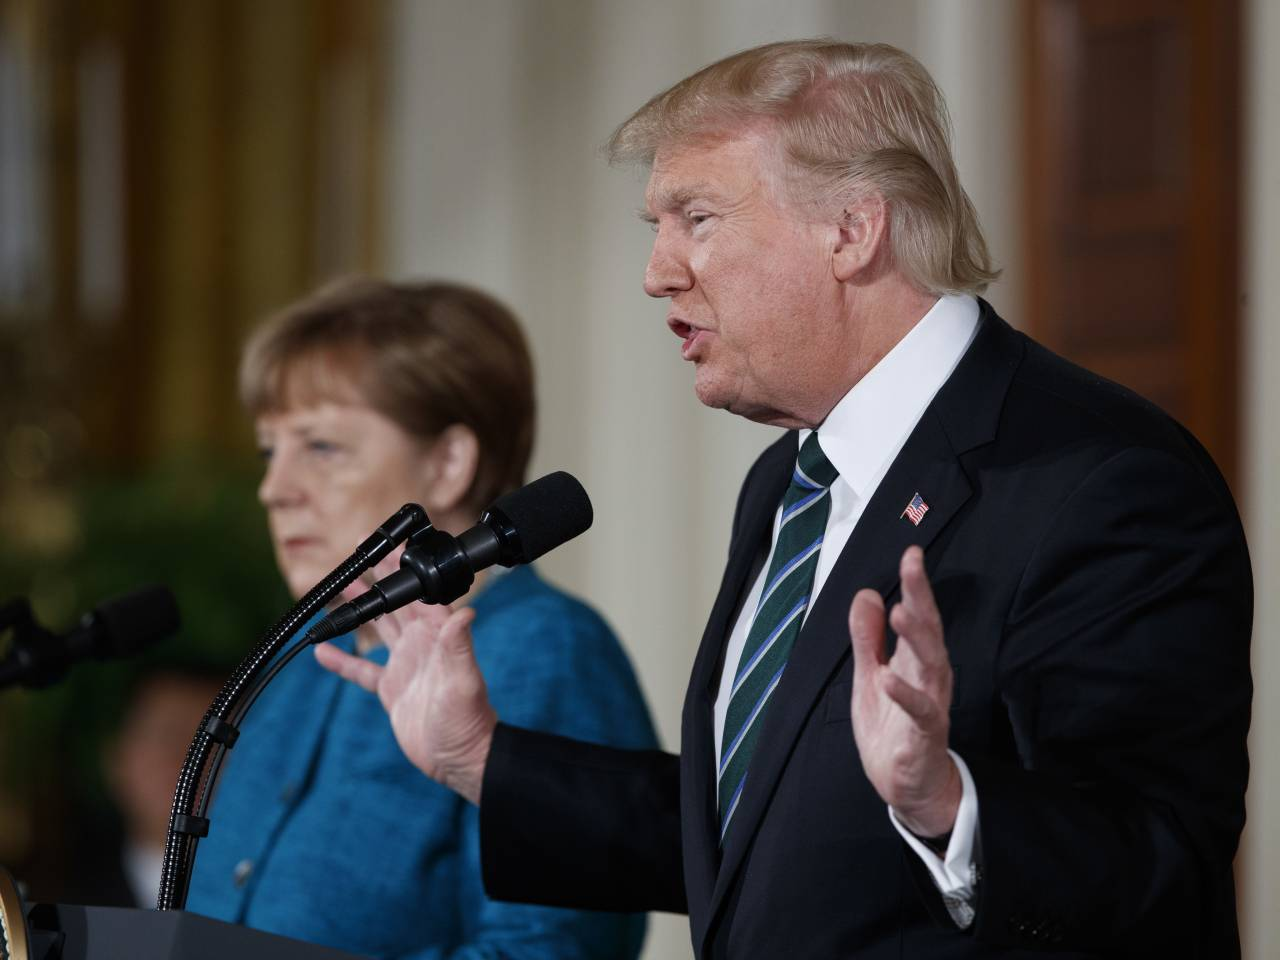 Trump, Merkel get along well: White House